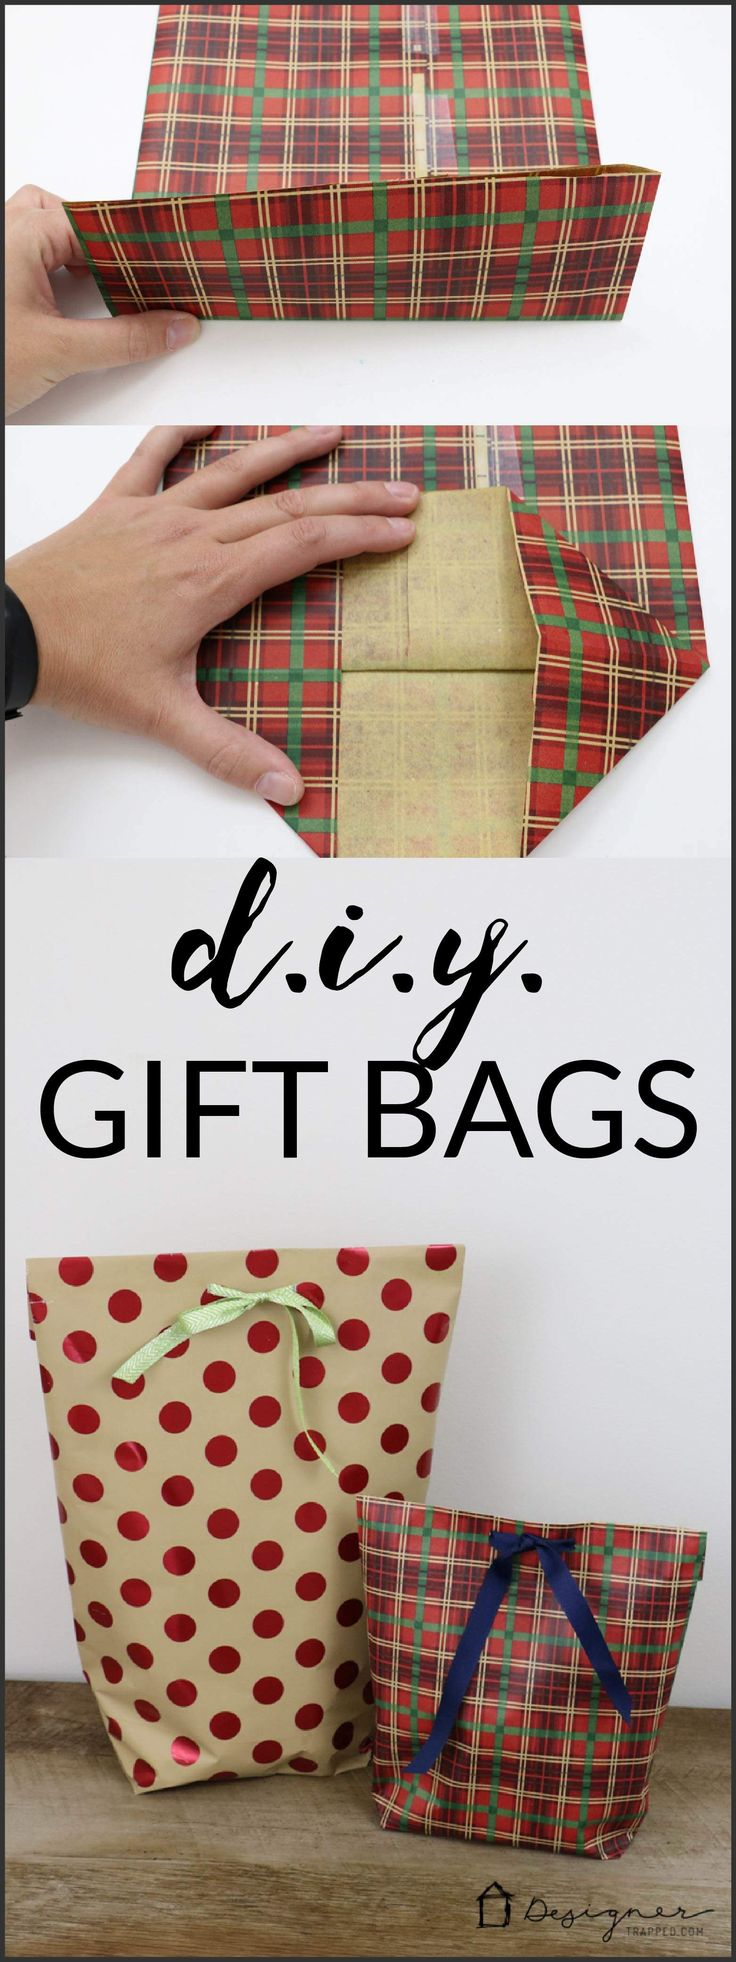 Making Homemade Christmas Gifts Part - 42: Best 25+ Diy Christmas Gifts Ideas Only On Pinterest | Diy Christmas  Presents, Xmas Gifts And Fun Christmas Gifts